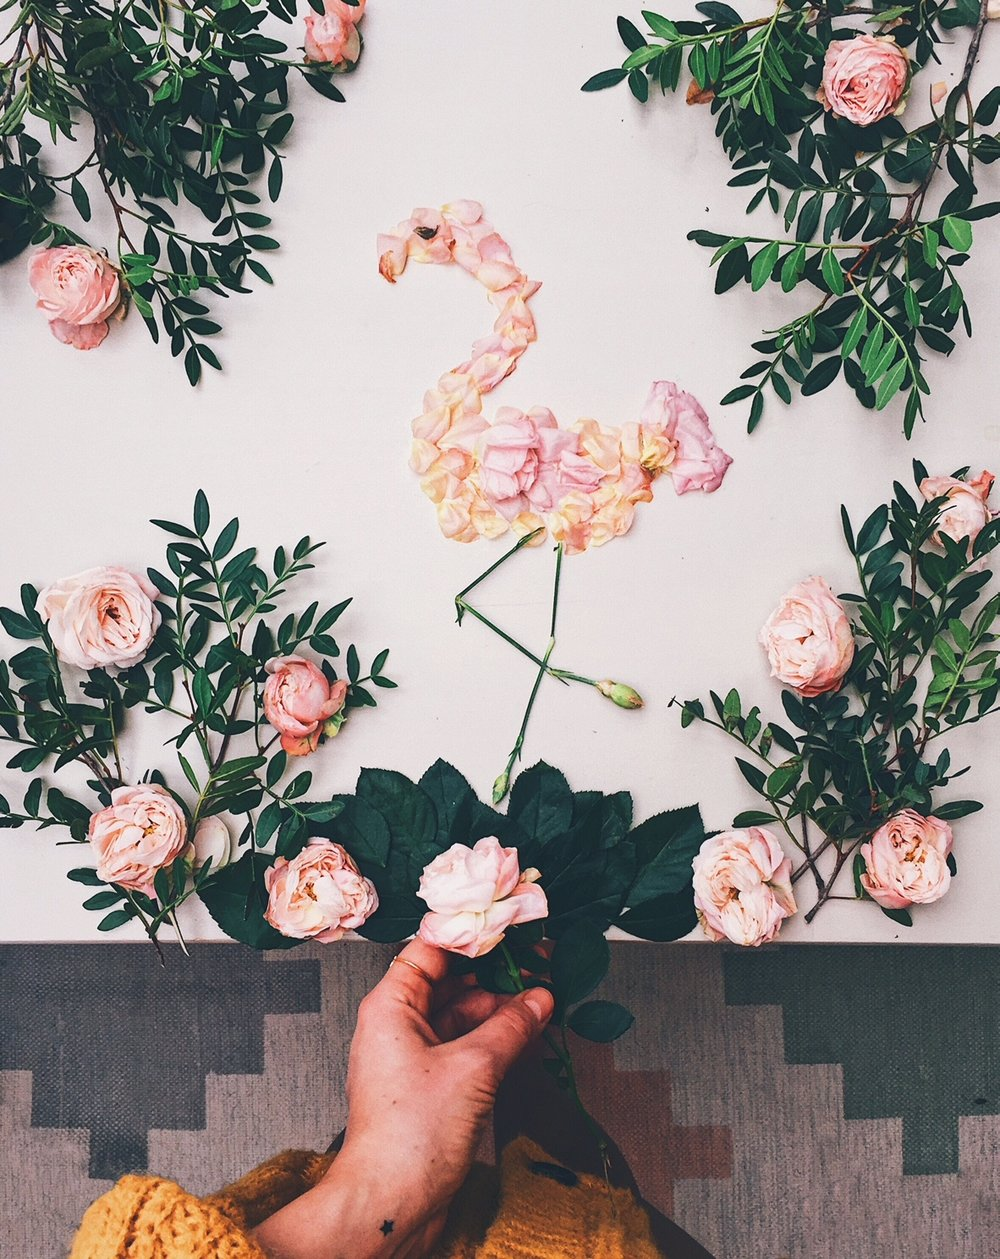 10 ways to boost your creativity- A flamingo made out of pink petals on the table